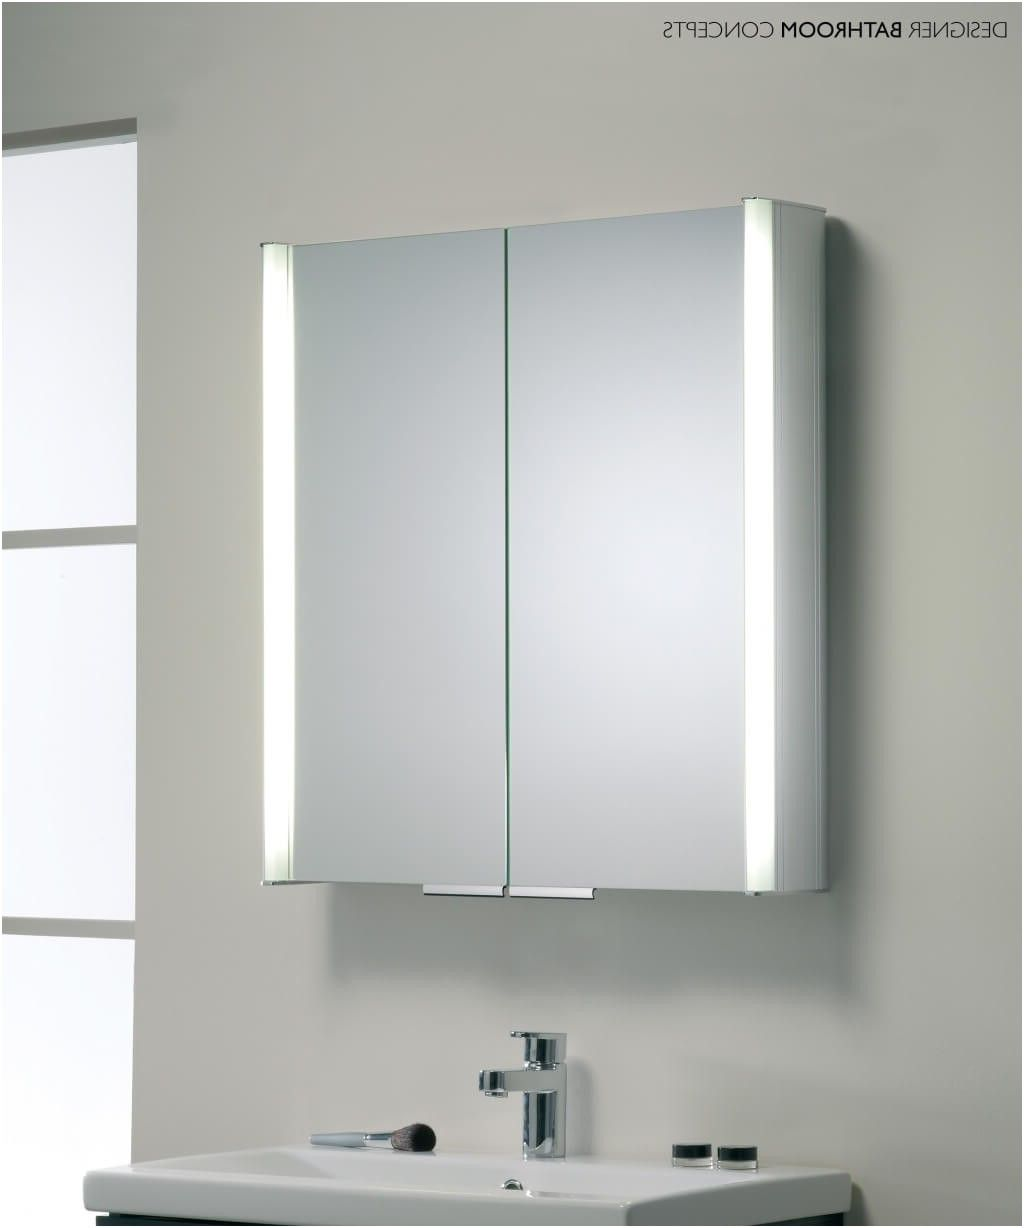 Bathroom Medicine Cabinets With Mirrors Uk Mirror Doors From